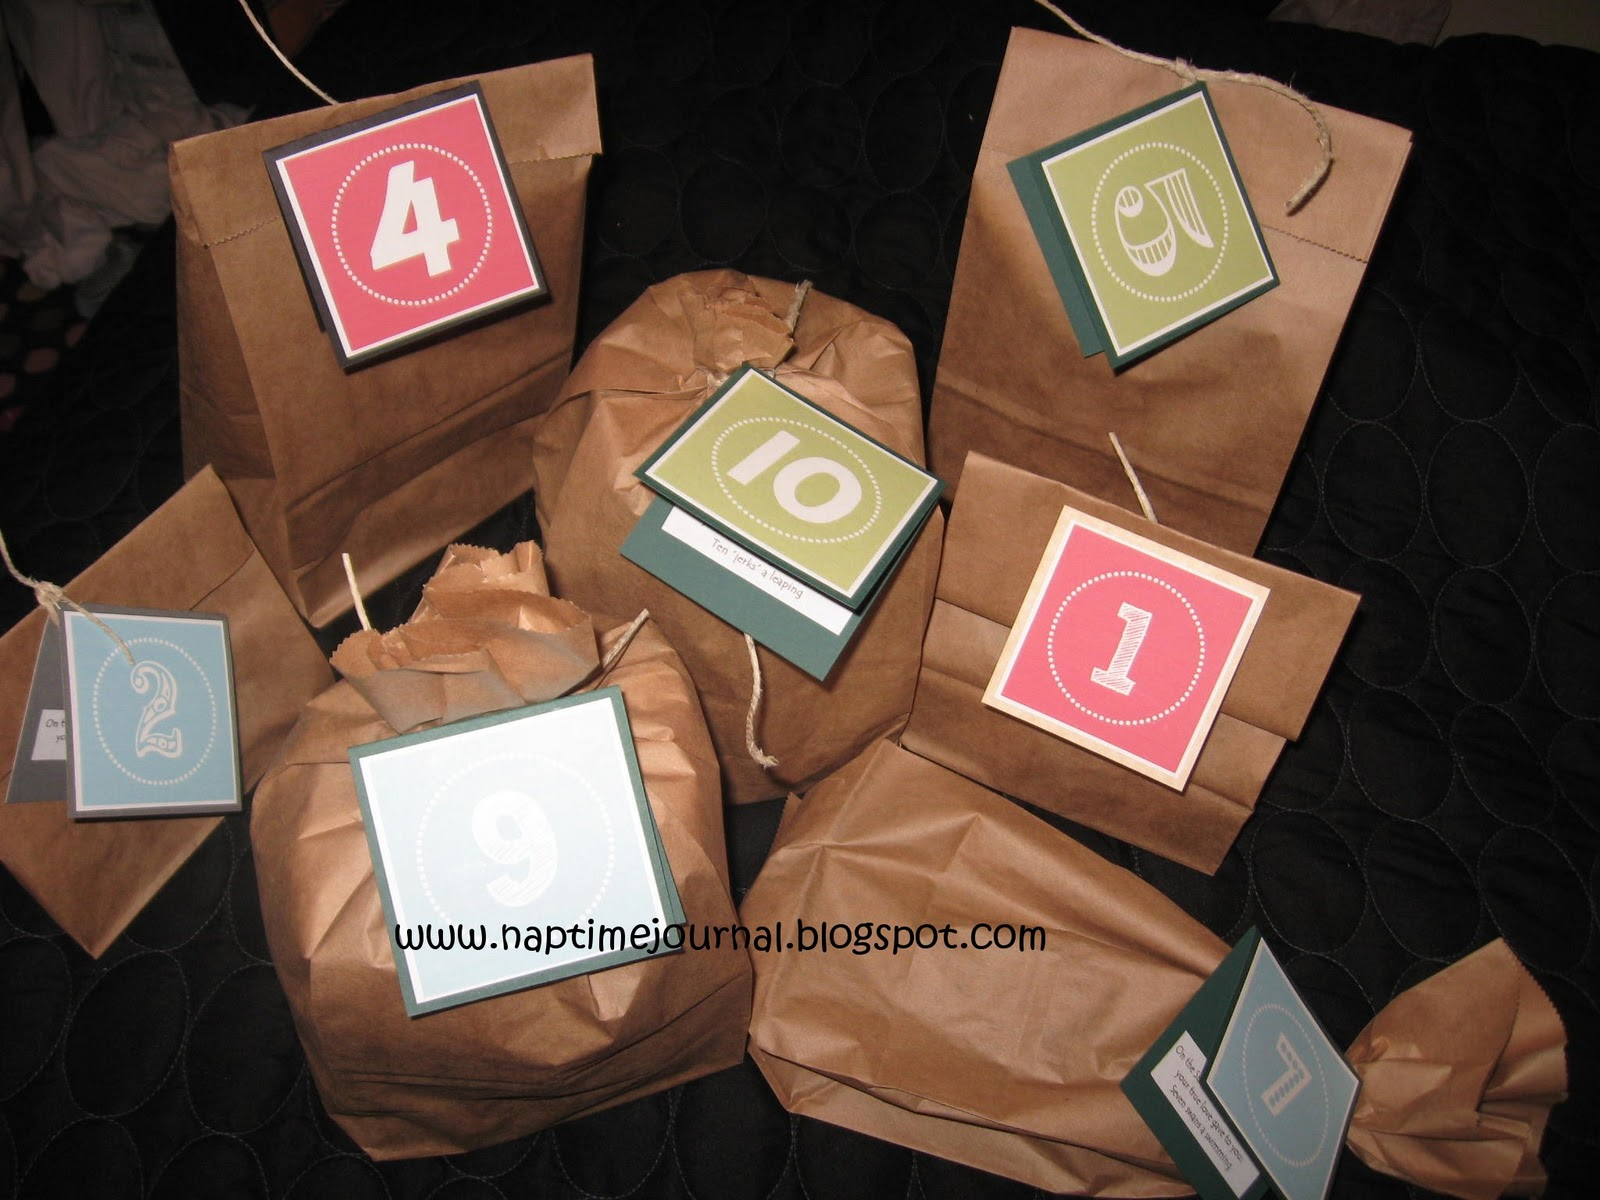 i went right along with the song i didnt make it to different i wrapped up the items as man ly as i could using brown paper bags and twine - 12 Days Of Christmas Gift Ideas For Him